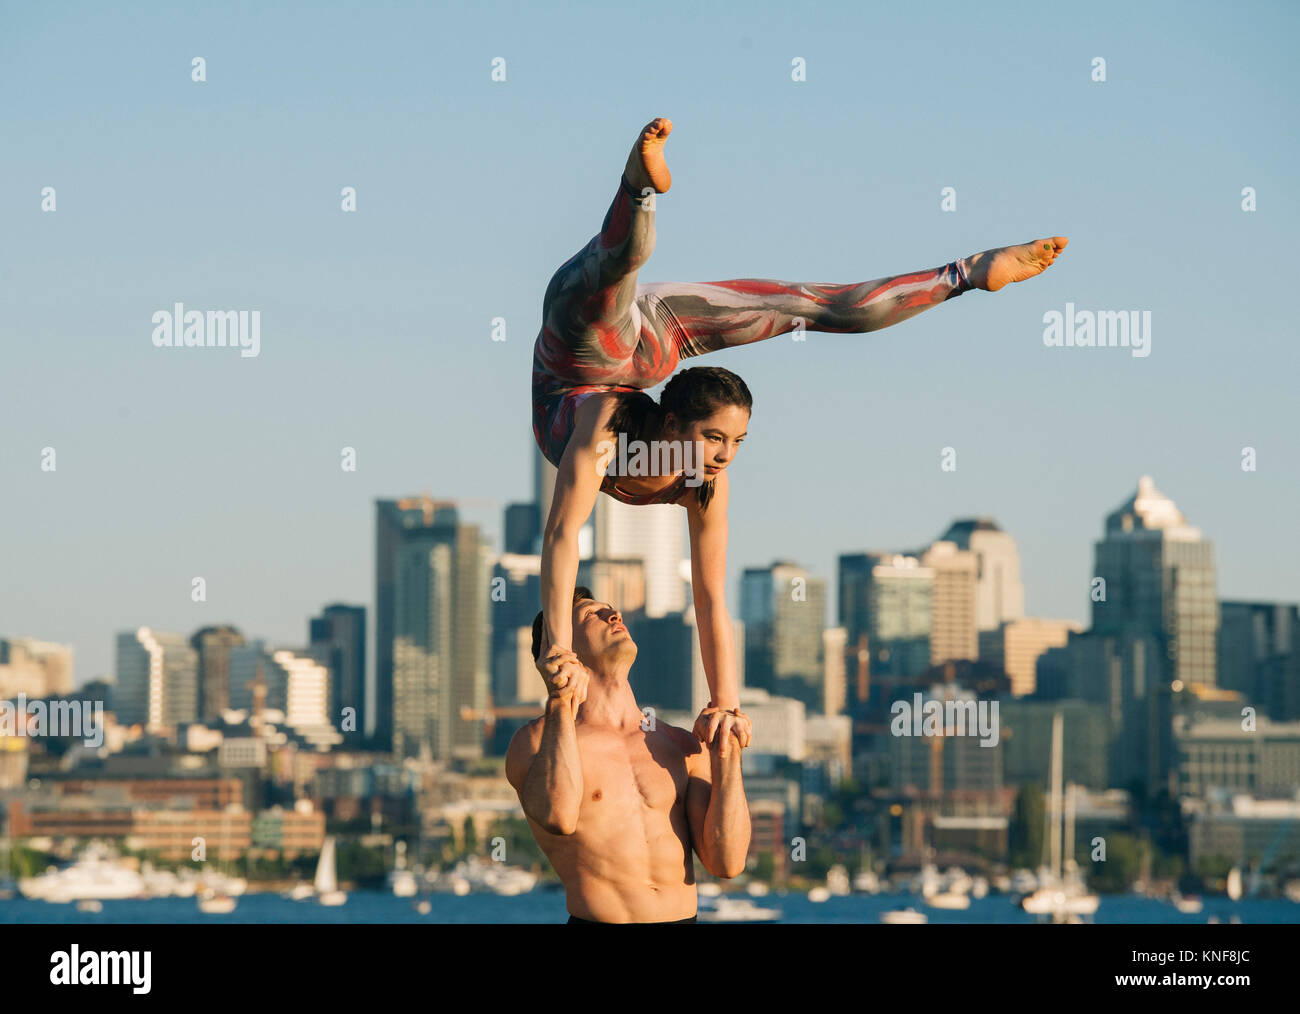 Teenage girl and young man, outdoors, woman balancing on man's hands in yoga position - Stock Image